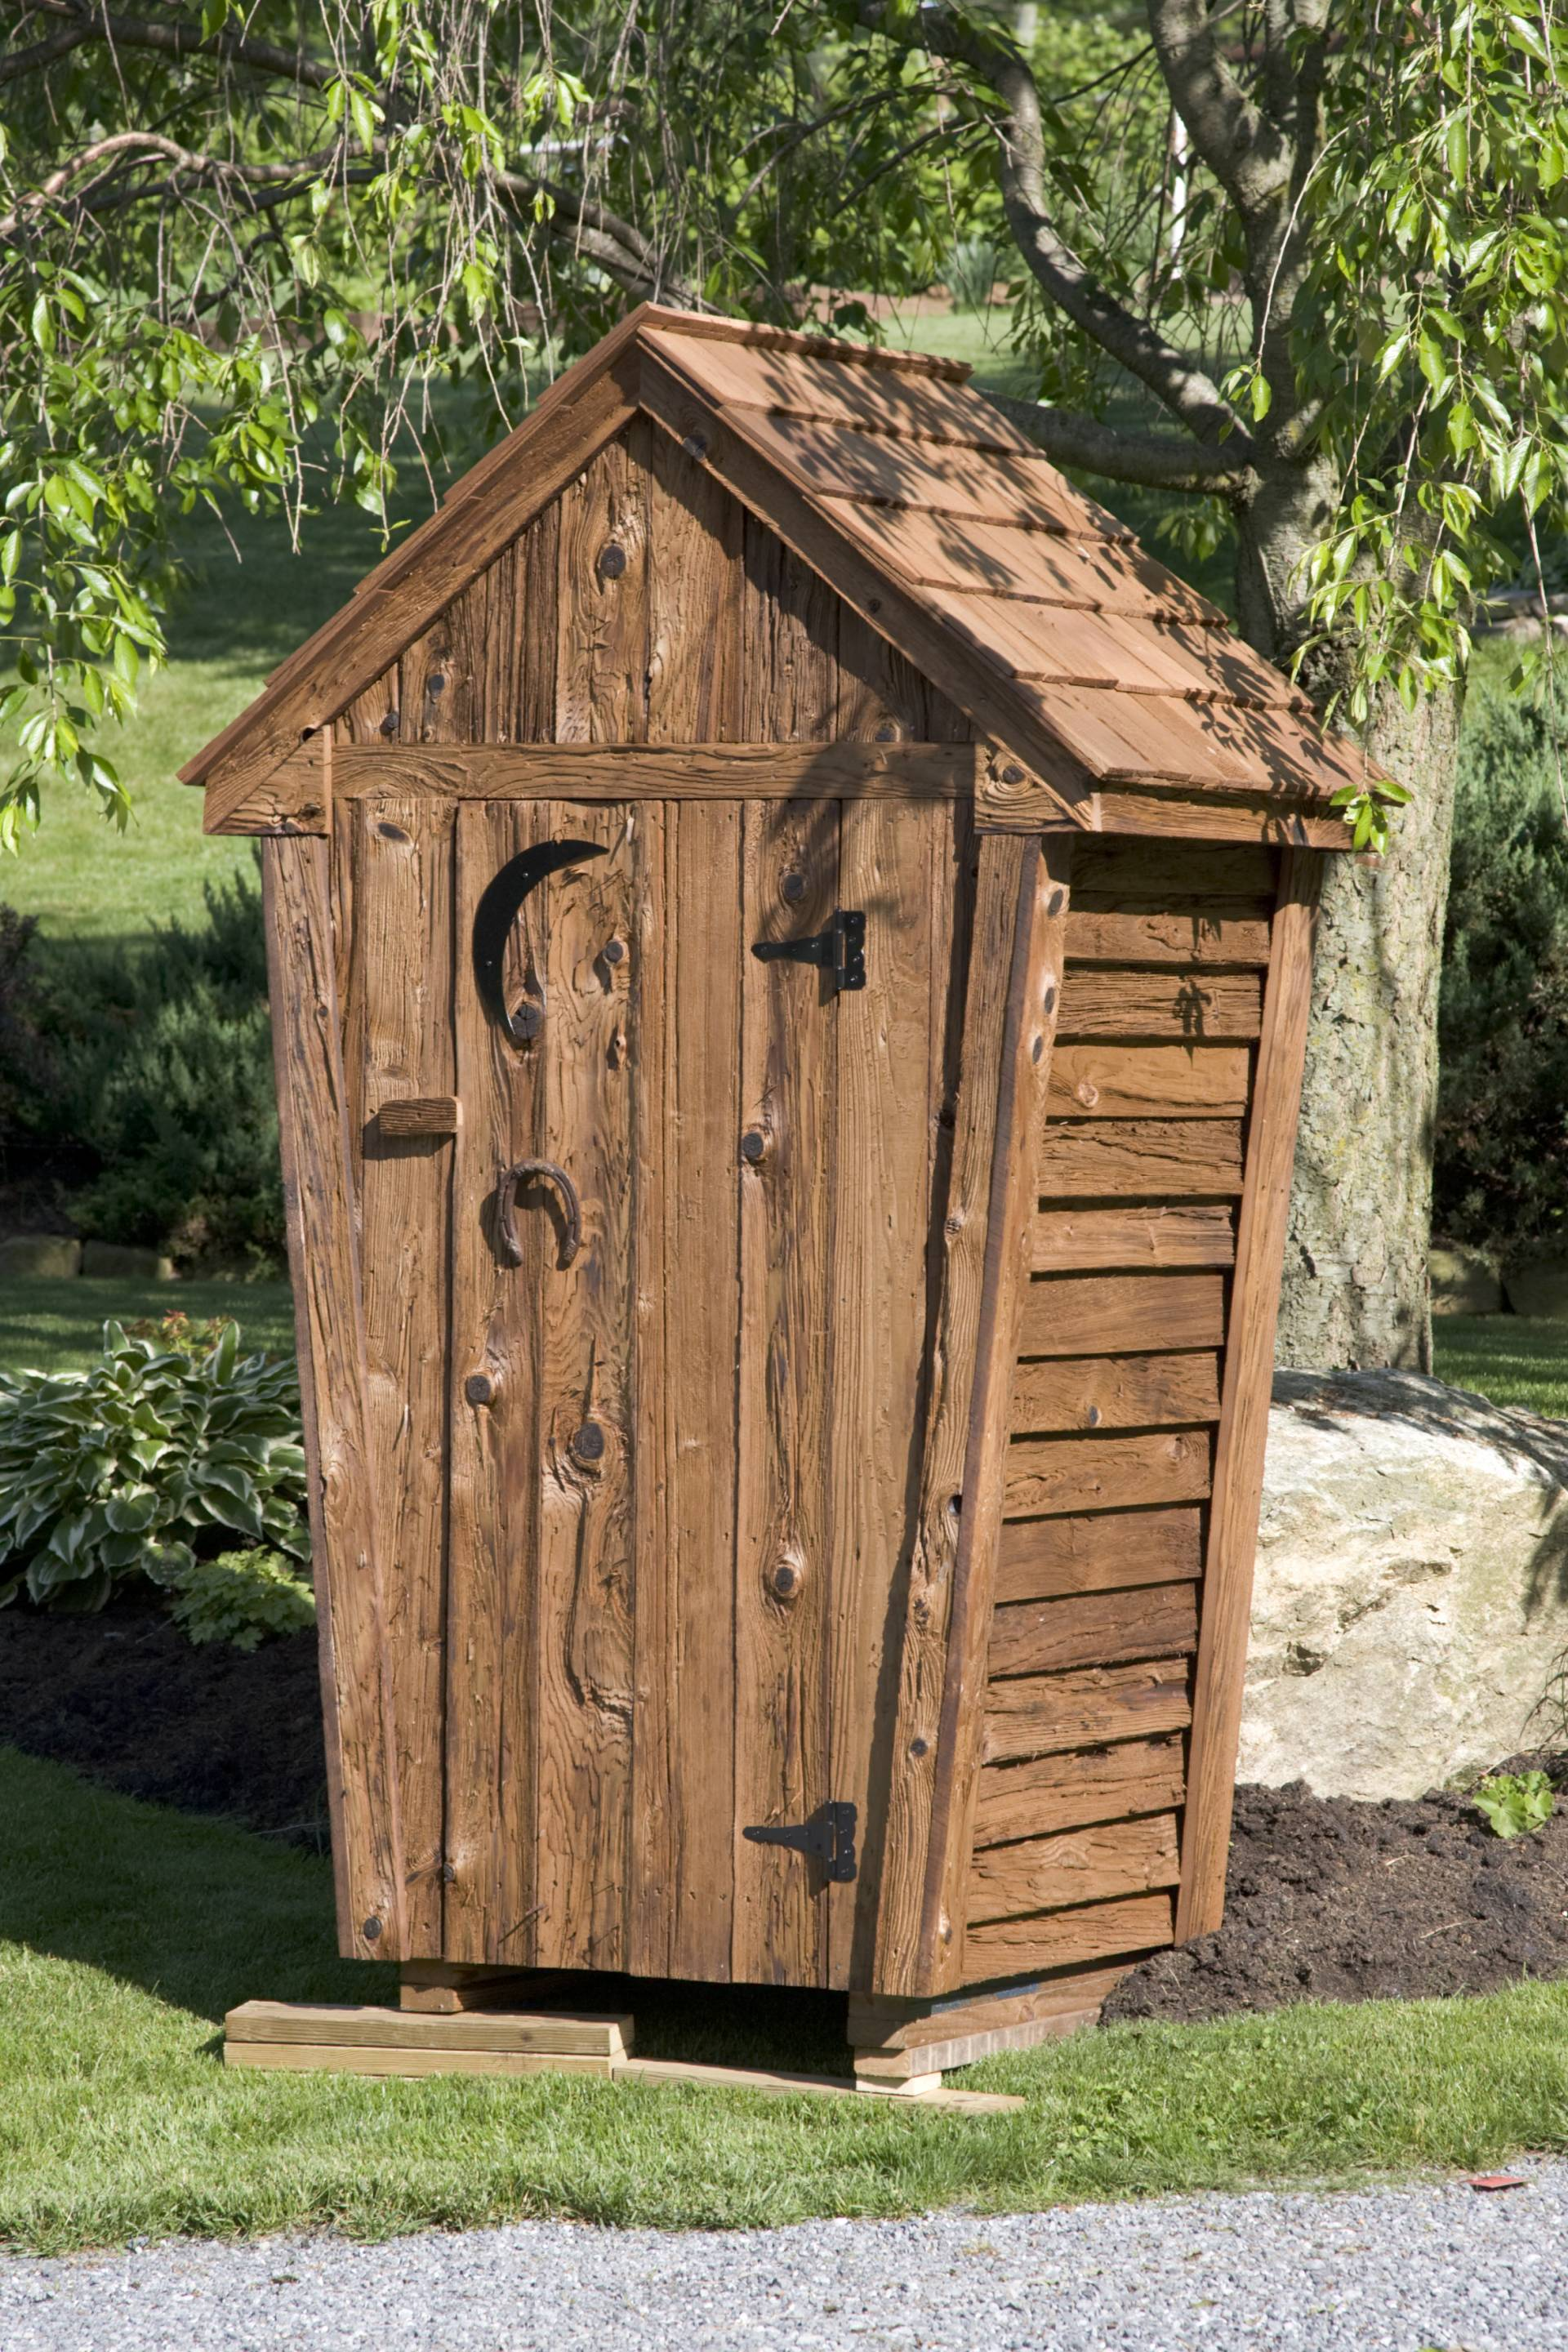 amish built outhouse with wood shingles and moon symbol